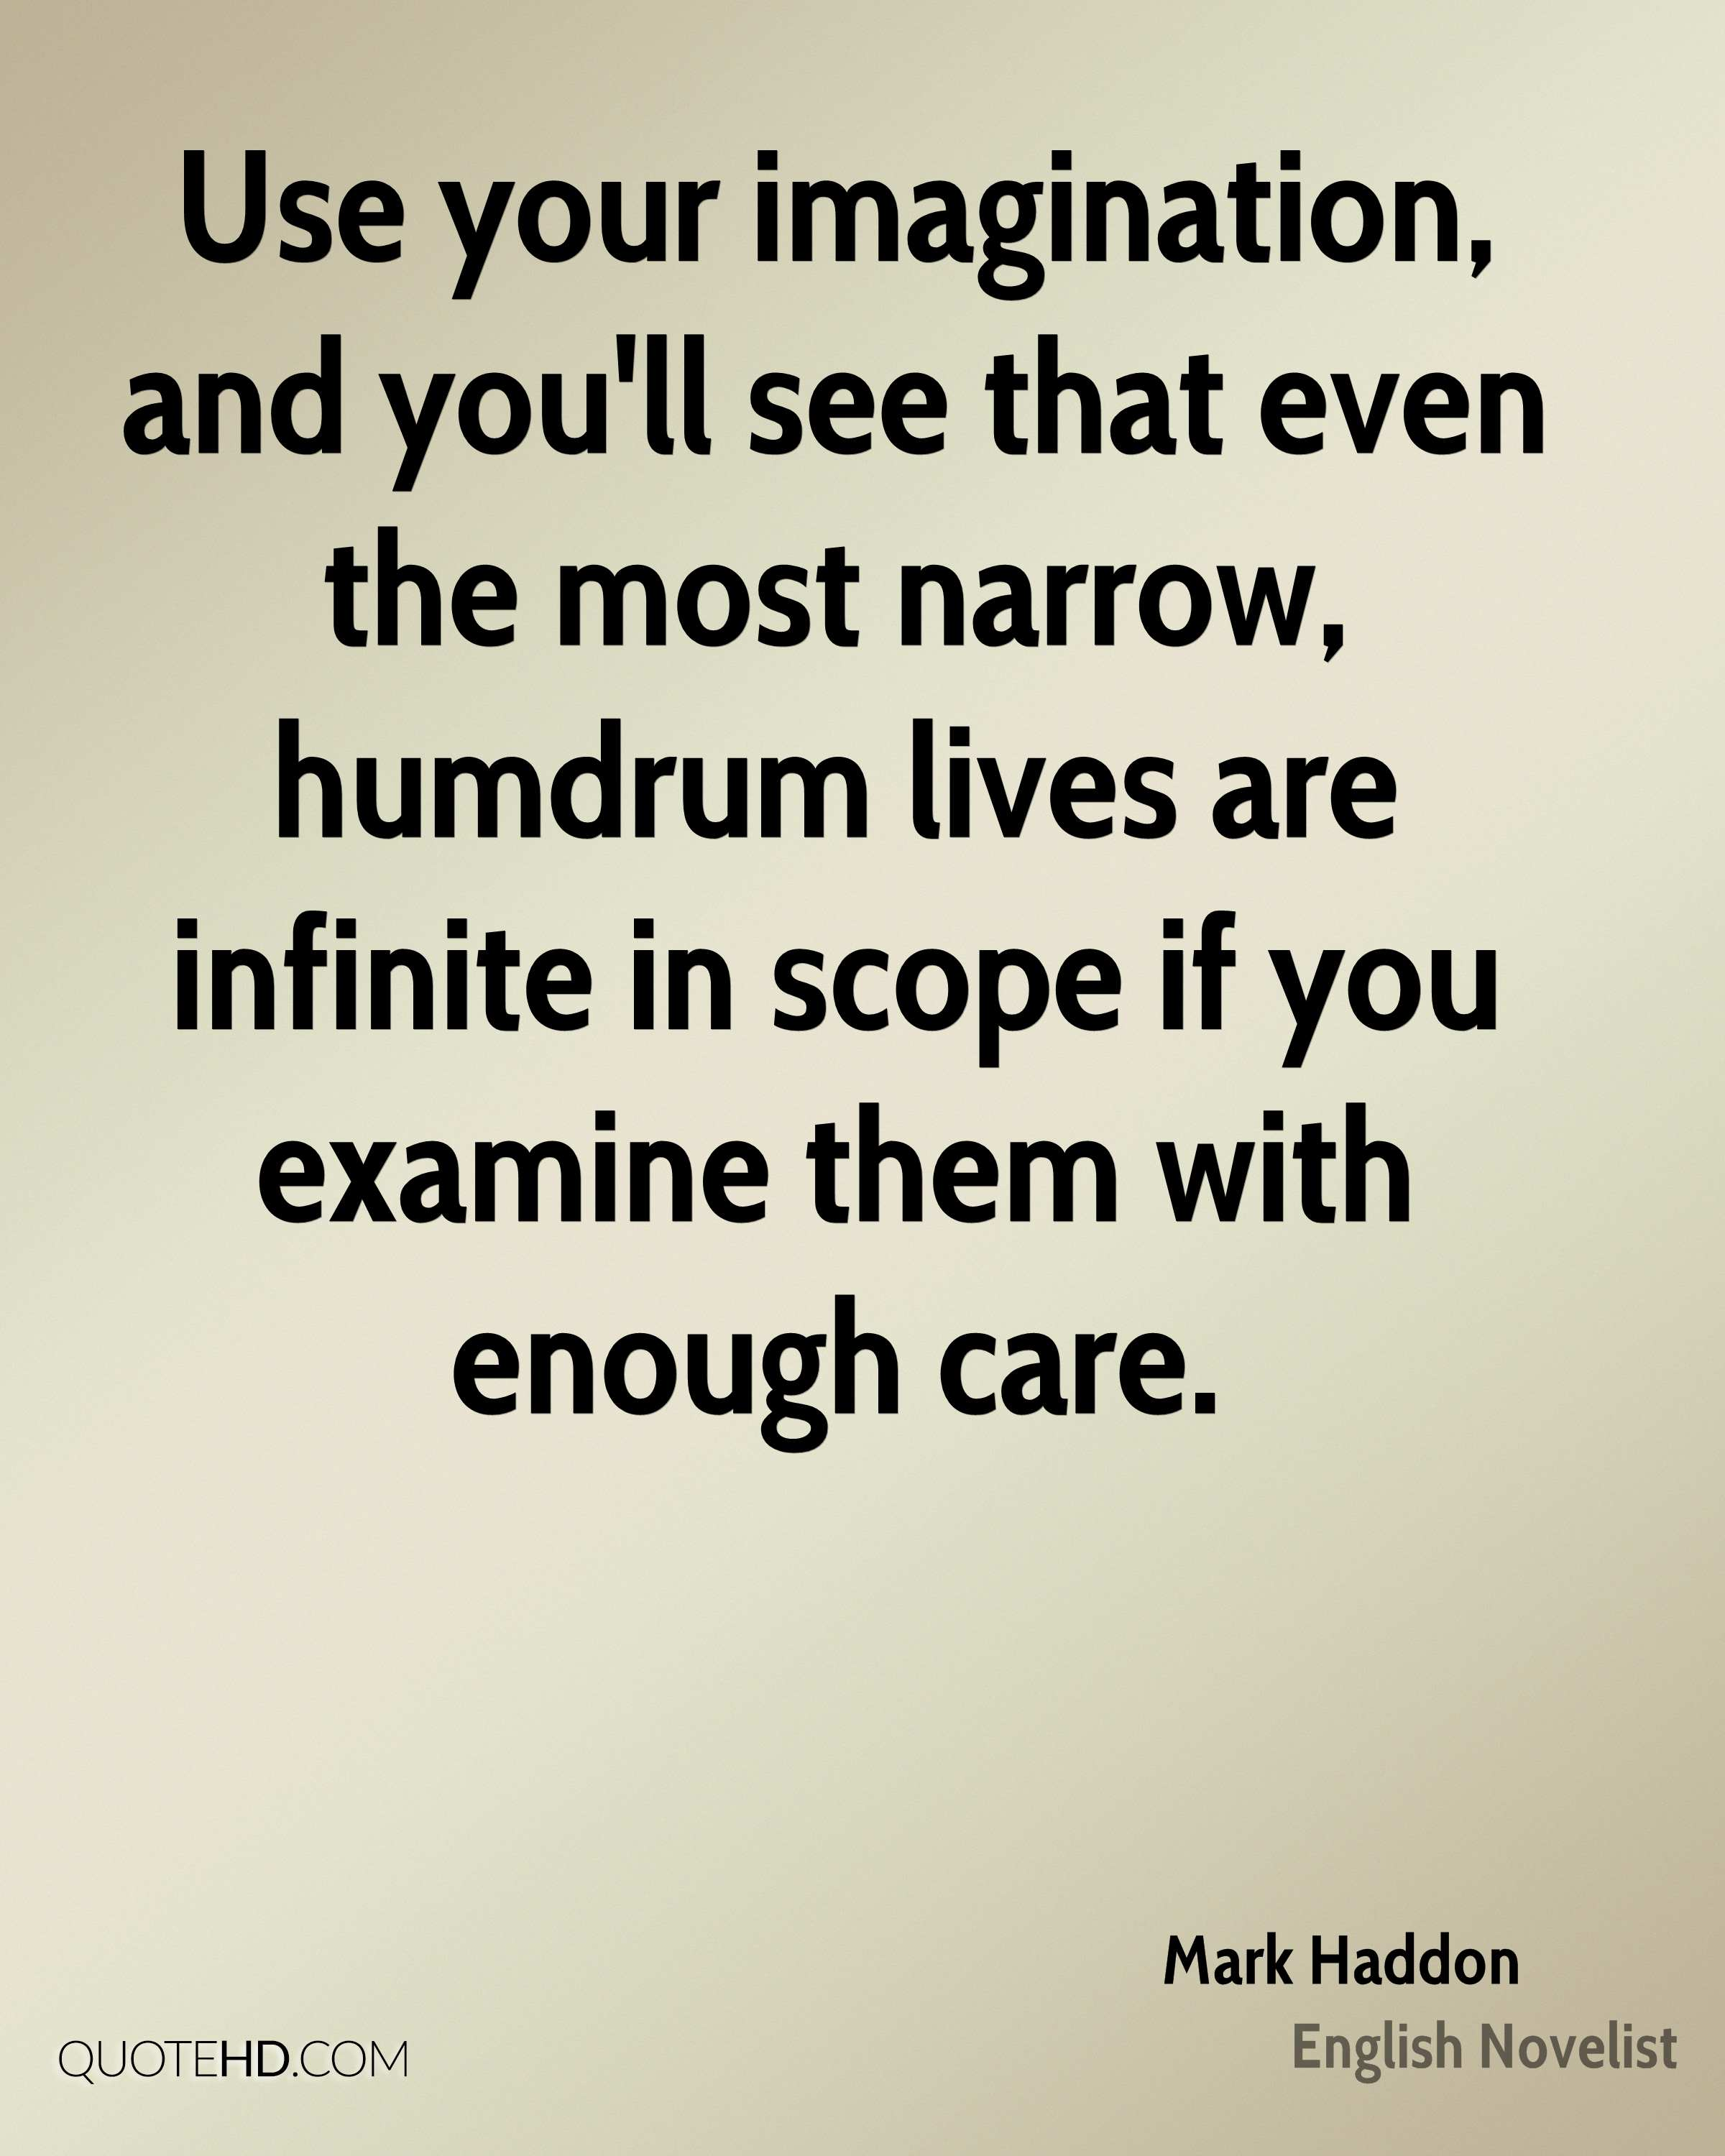 Use your imagination, and you'll see that even the most narrow, humdrum lives are infinite in scope if you examine them with enough care.